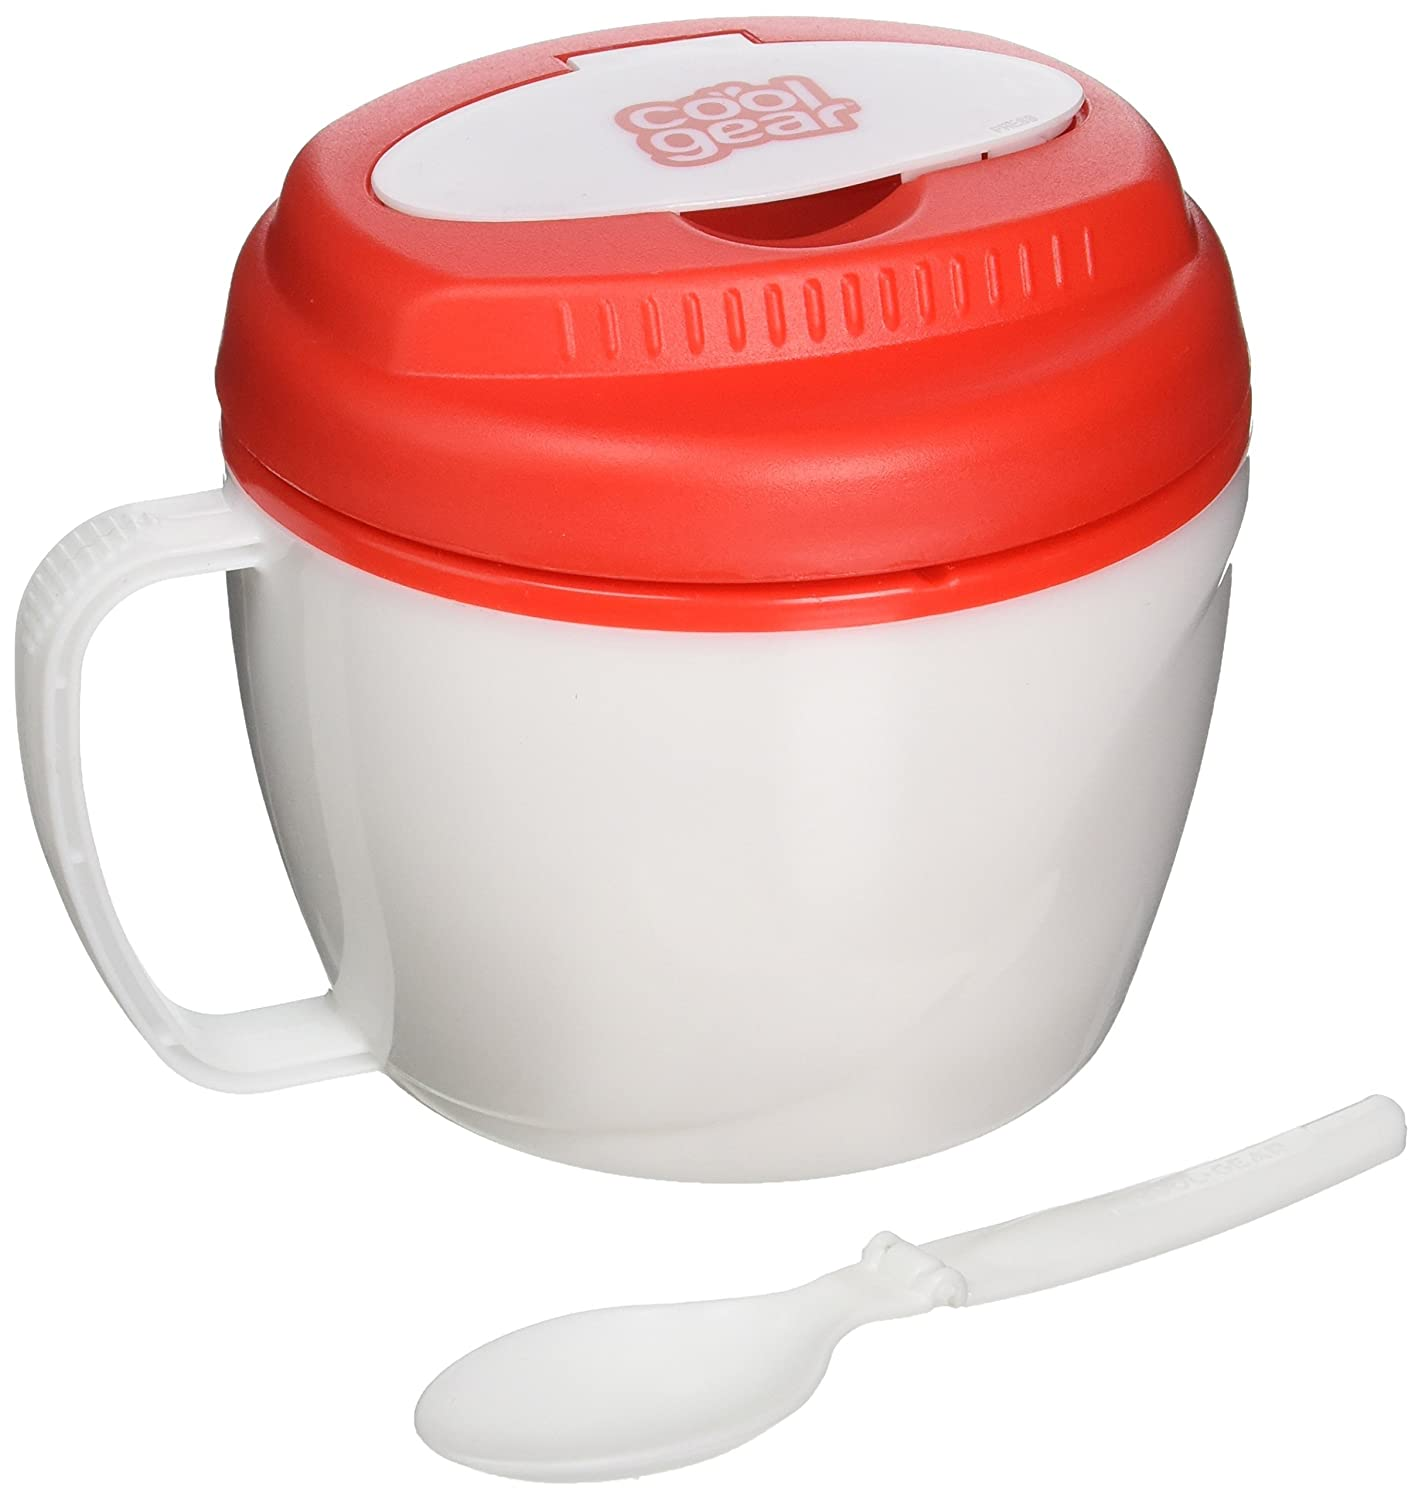 Stay Fit Soup/Meal Container, EZ Heat